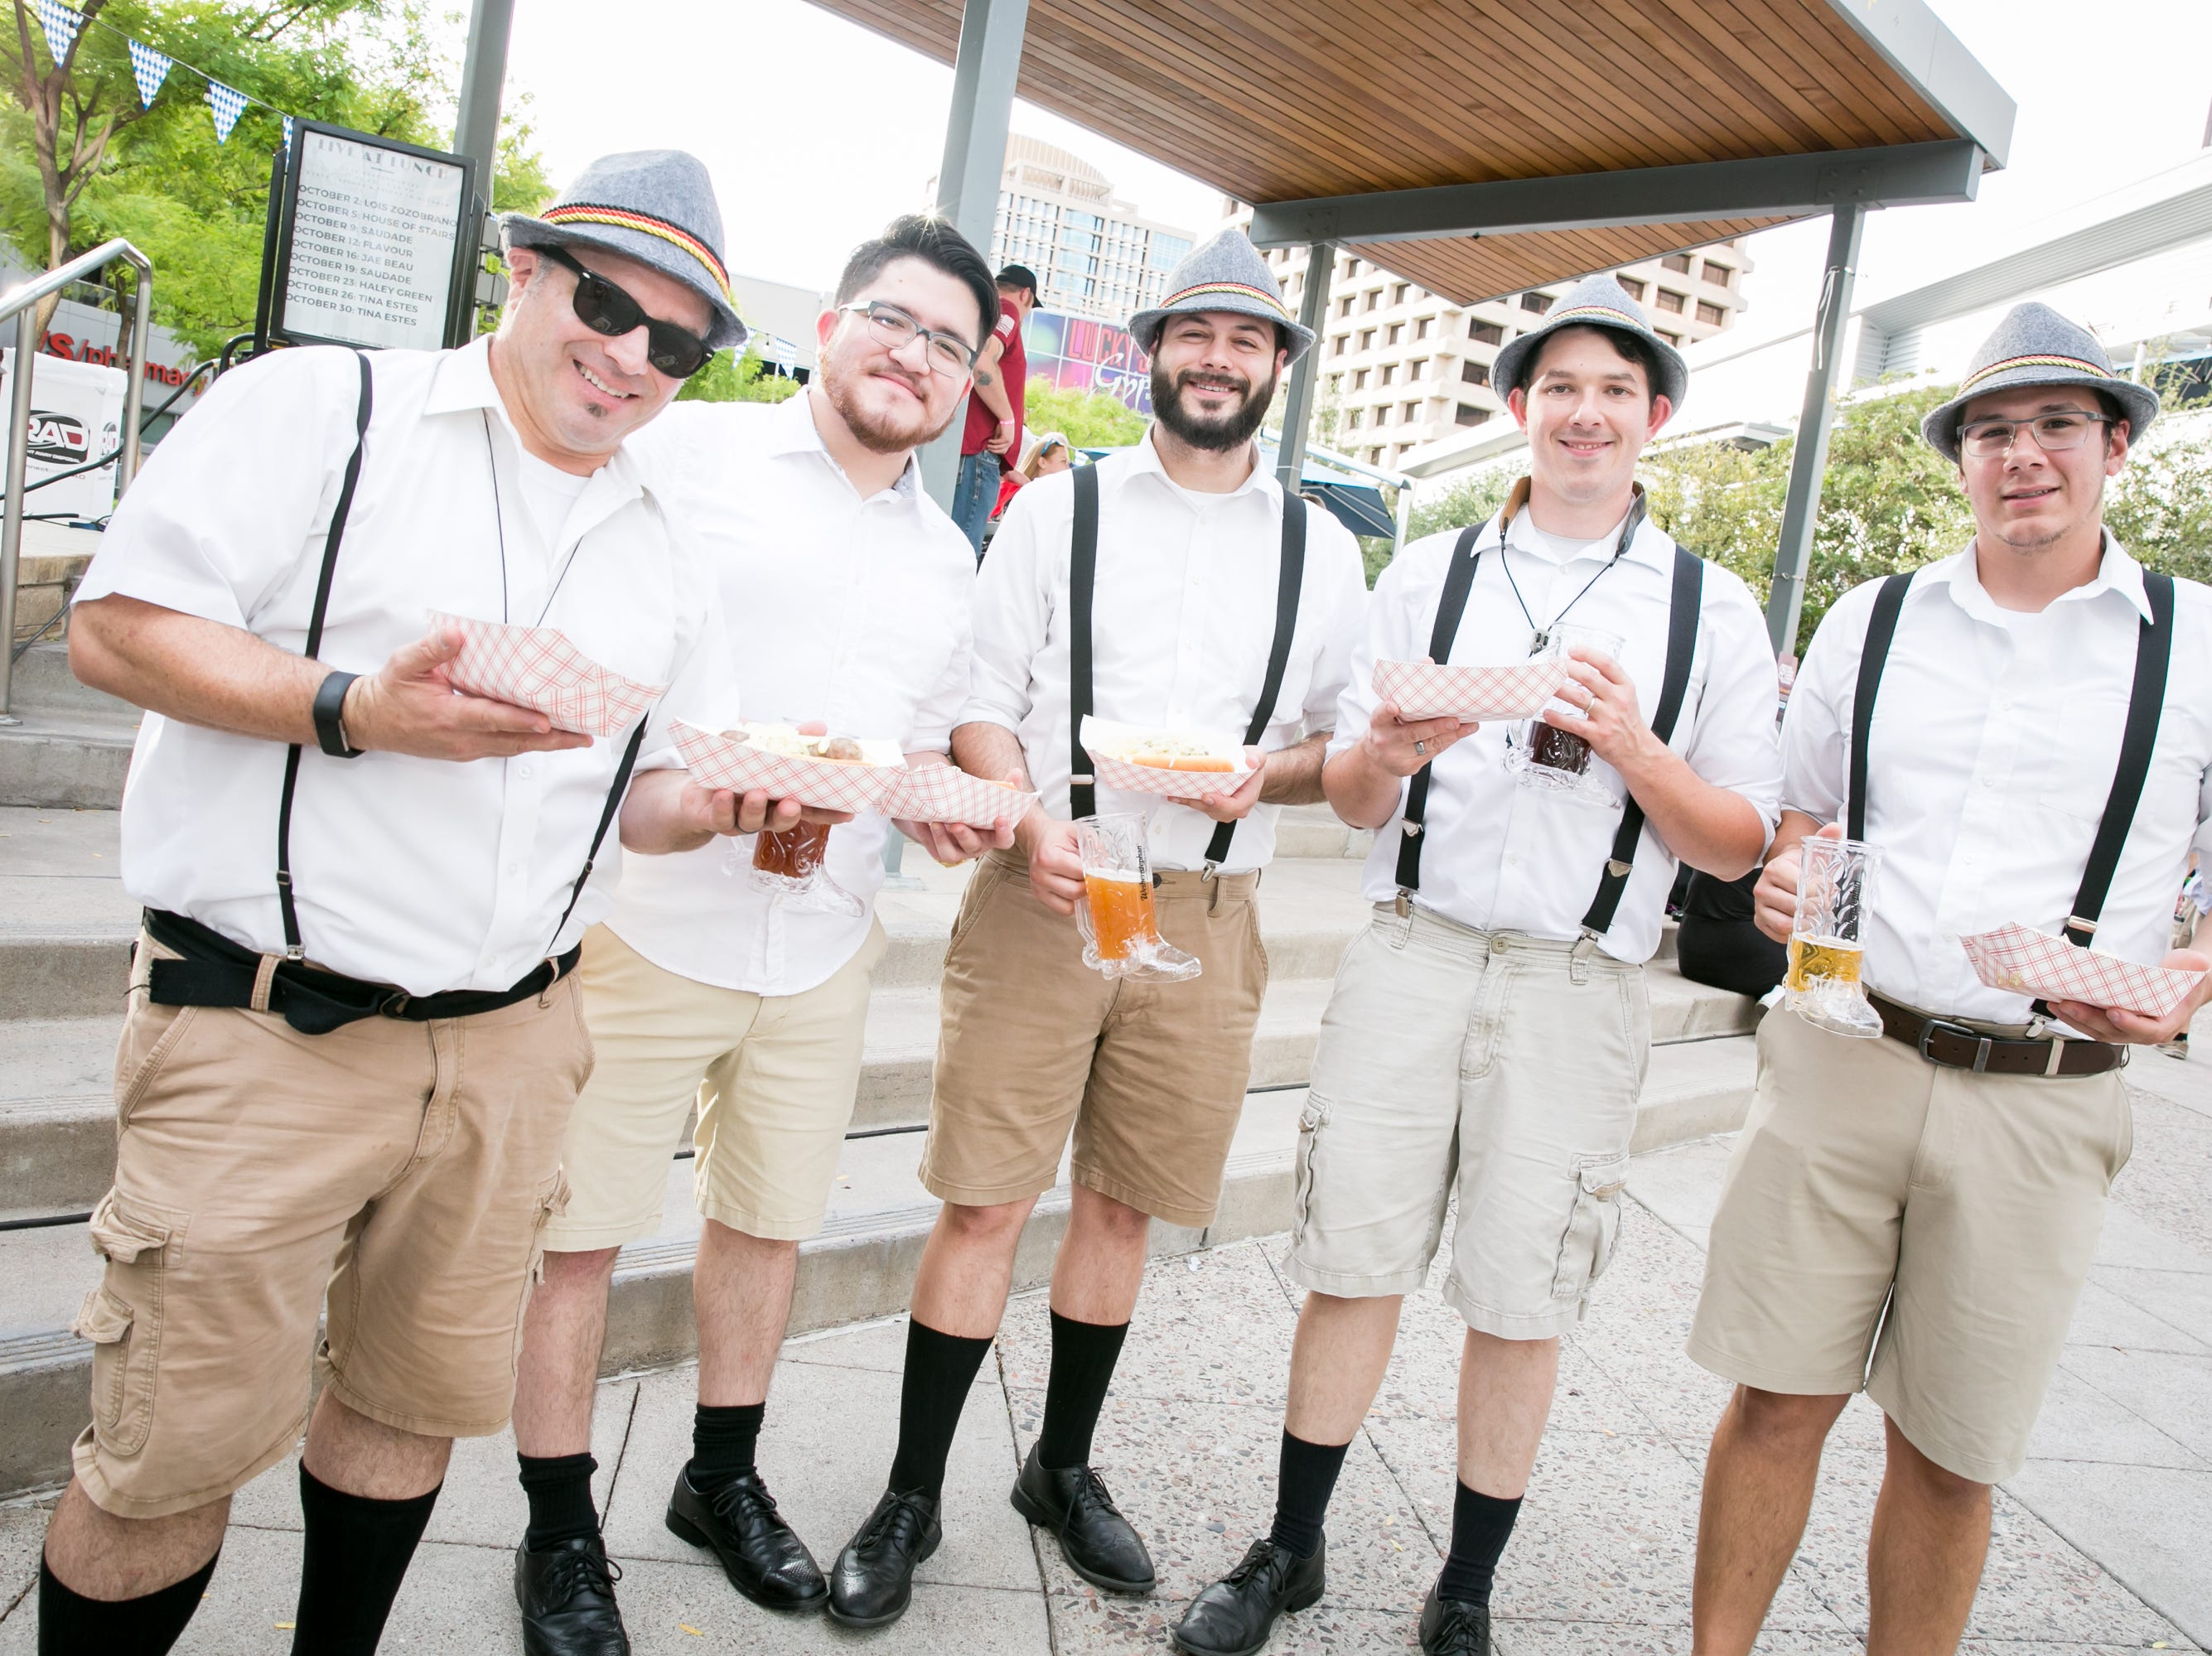 The Funkhouse Brass Band enjoyed some food before performing during Downtown Phoenix Oktoberfest at CityScape on Saturday, October 6, 2018.